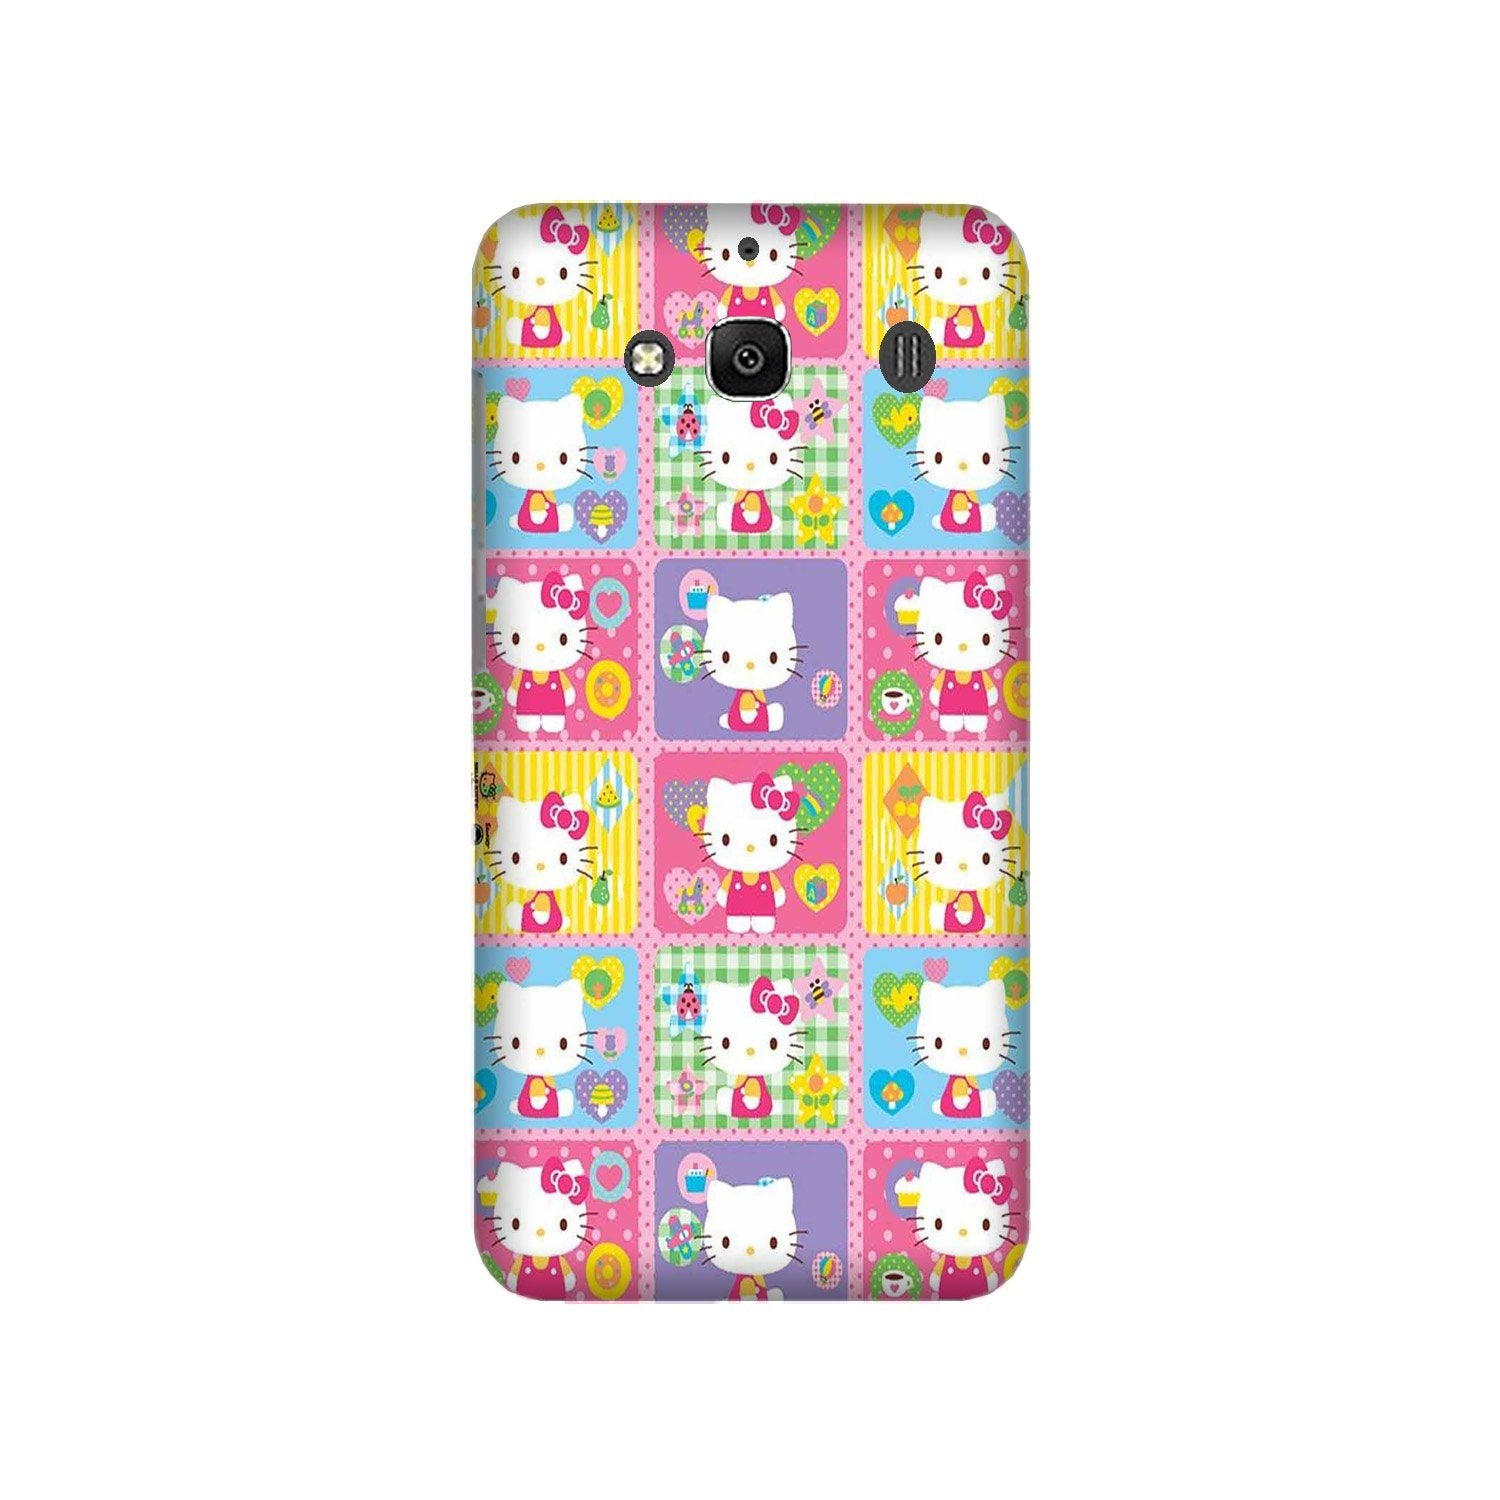 Kitty Mobile Back Case for Redmi 2 Prime  (Design - 400)